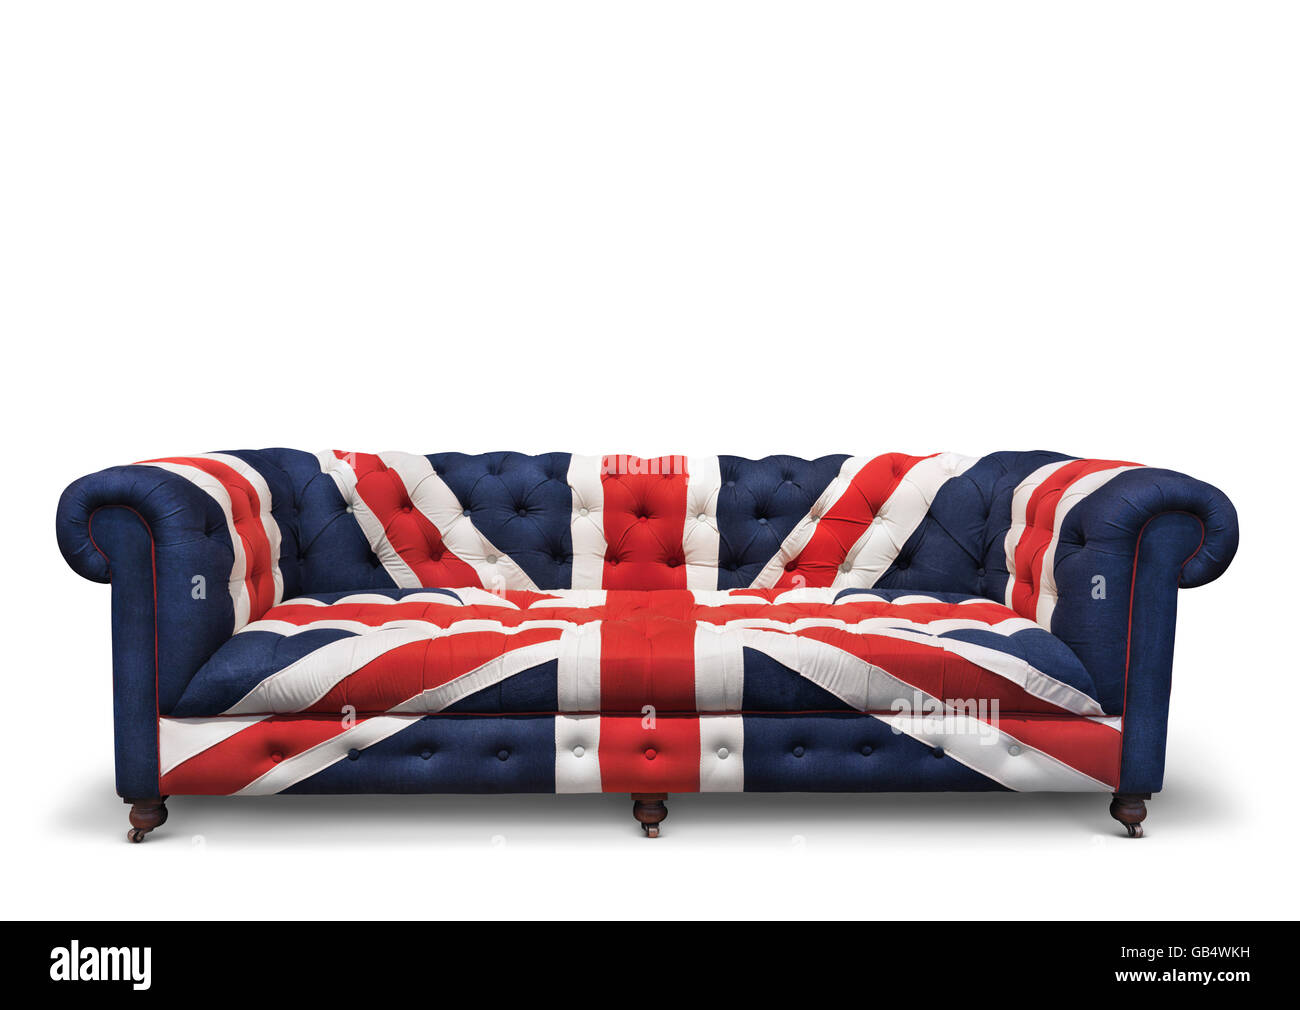 Sofa with a patriotic Union Jack pattern - Stock Image